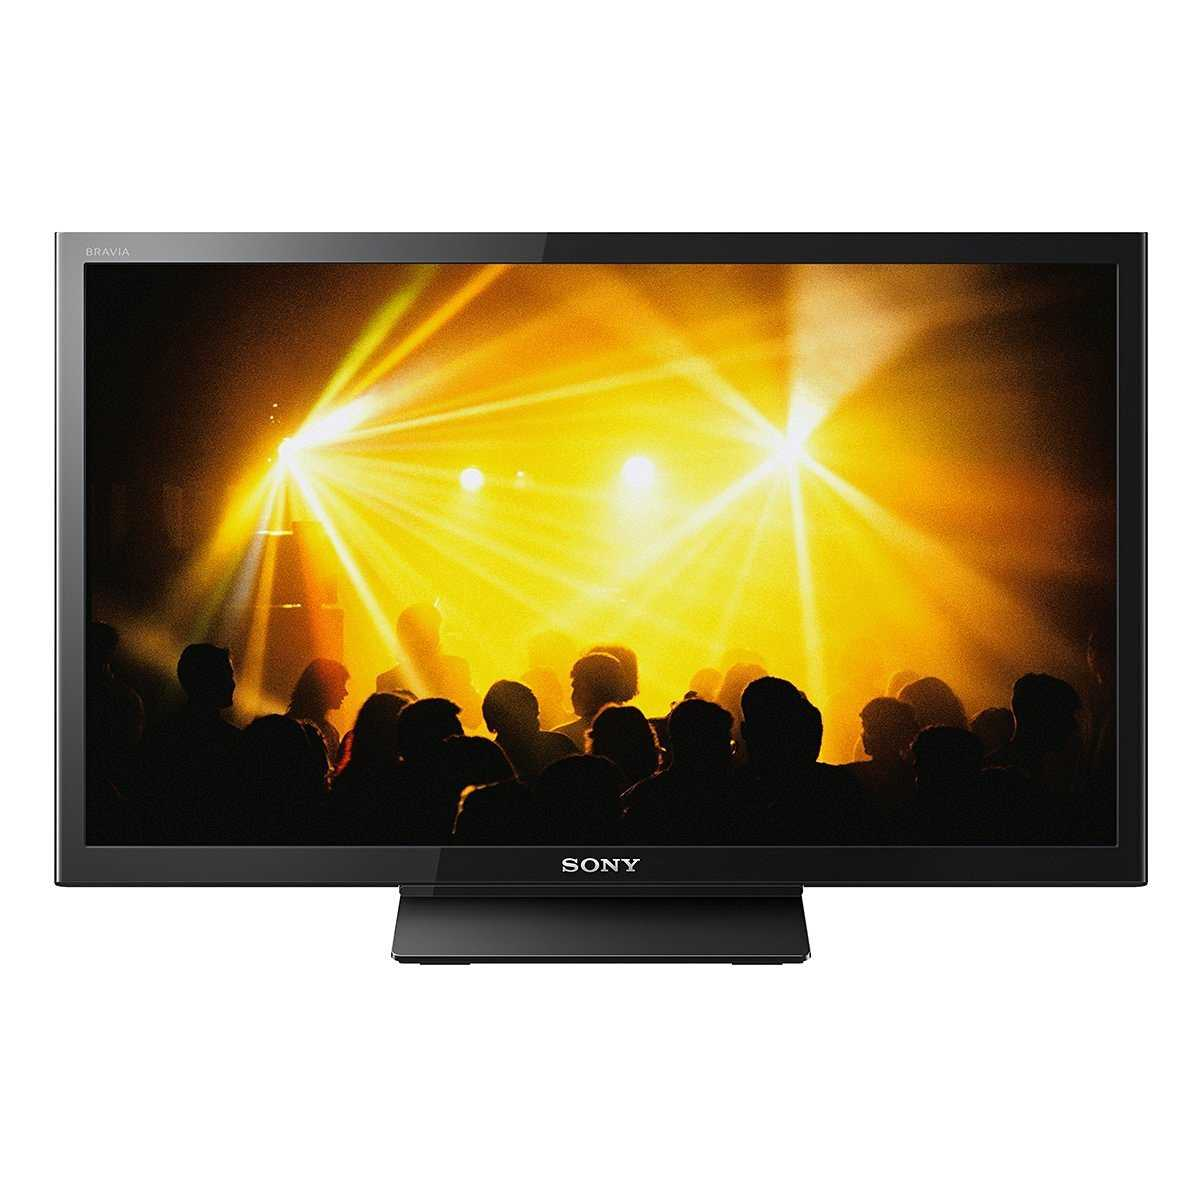 Sony Bravia KLV 29P423D 29 Inch HD Ready LED Television Price {13 Sep 2018}  | Bravia KLV 29P423DReviews And Specifications